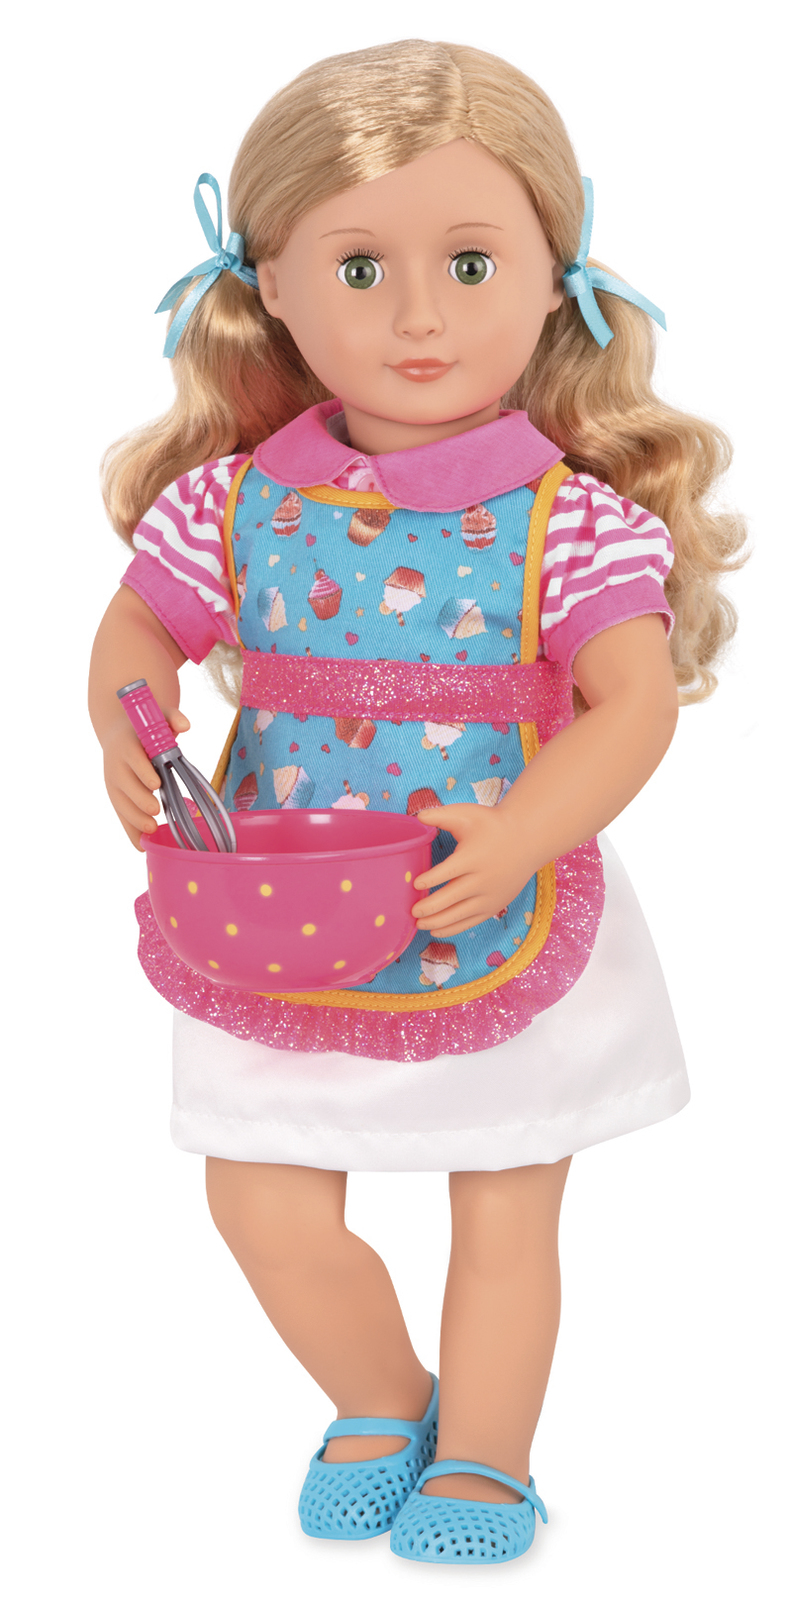 """Our Generation: 18"""" Deluxe Doll & Book - Jenny image"""